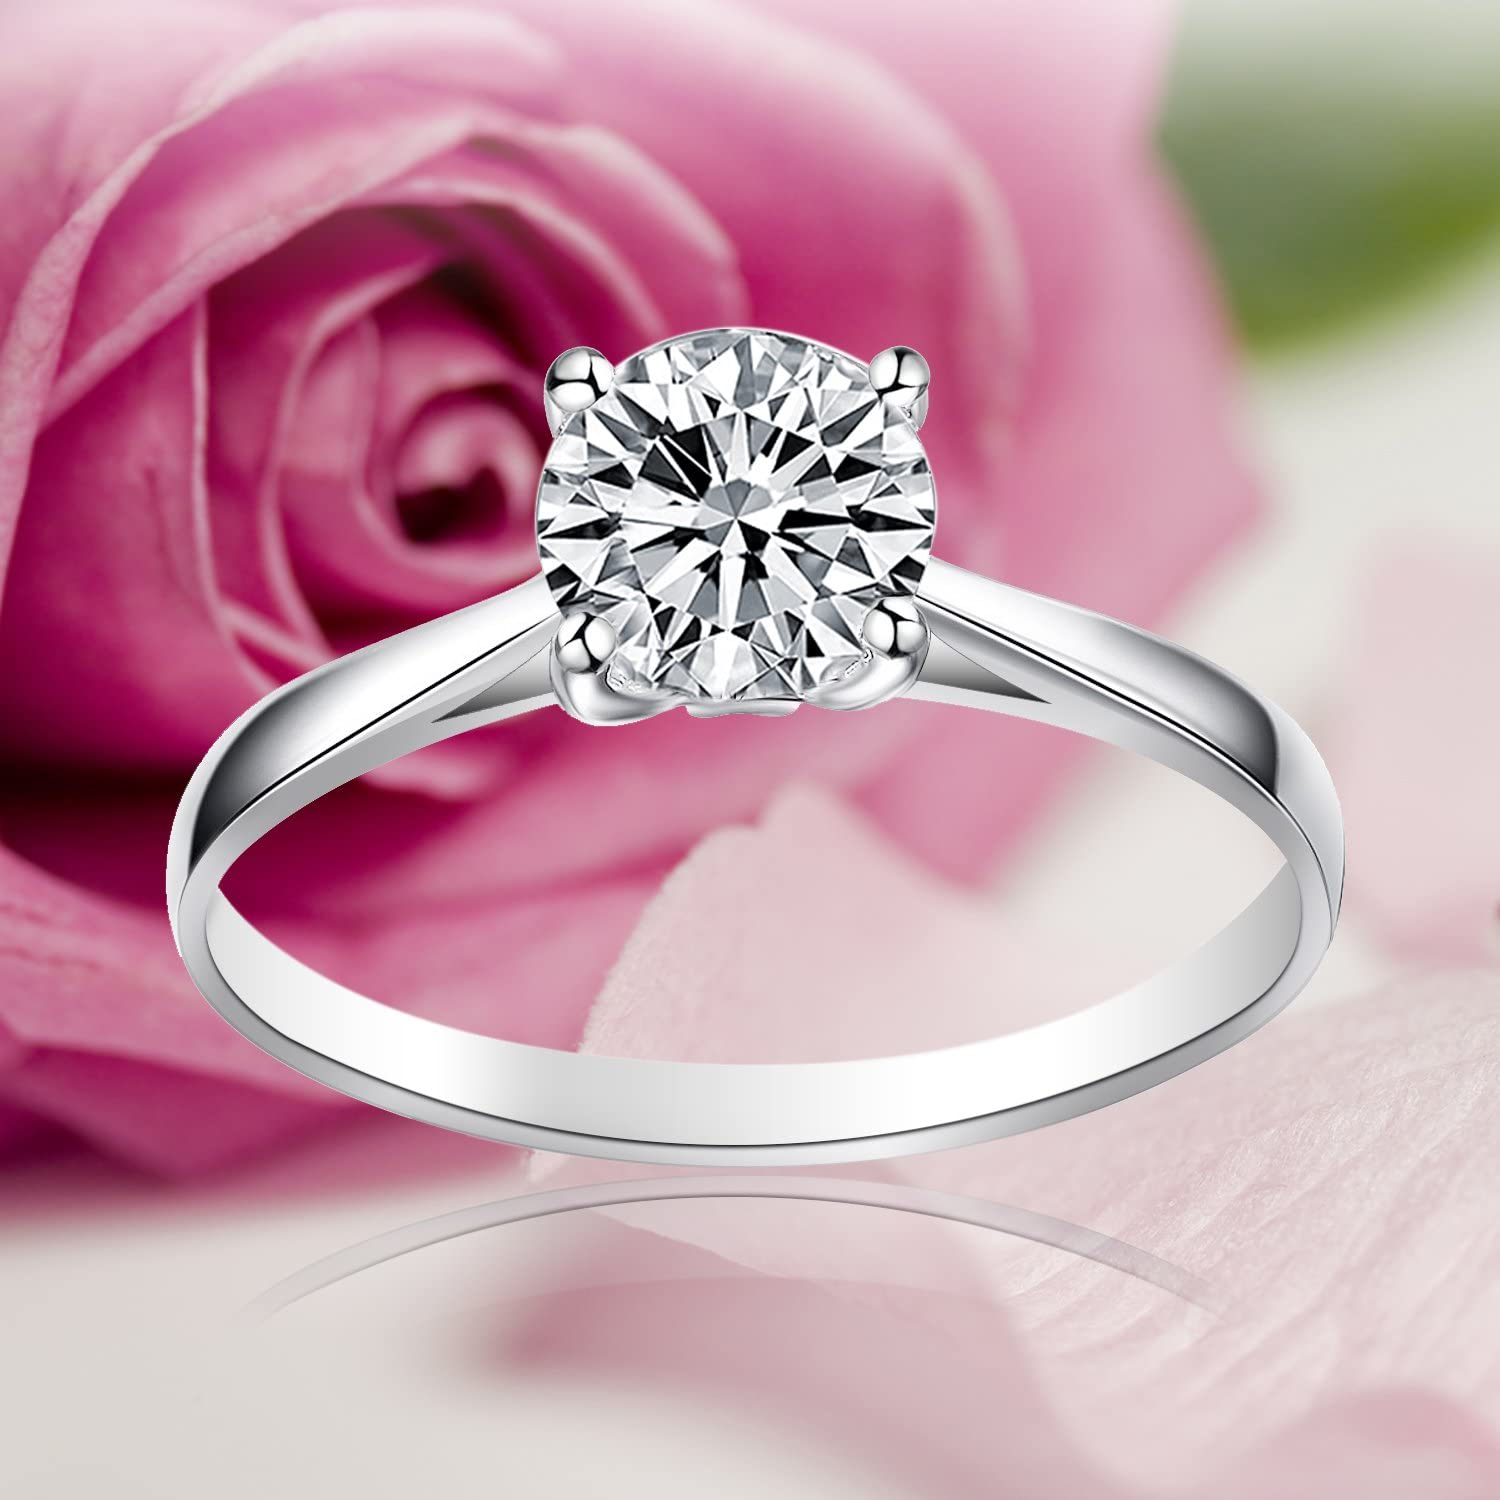 Size UK M J L K N P Q R O With Gift Box 925 Sterling Silver Crystal 4-Claw Set 1.25CT Round 7mm CZ Solitaire Love Forever Engagement Promise Eternity Bridal Wedding Rings for women teenage girls